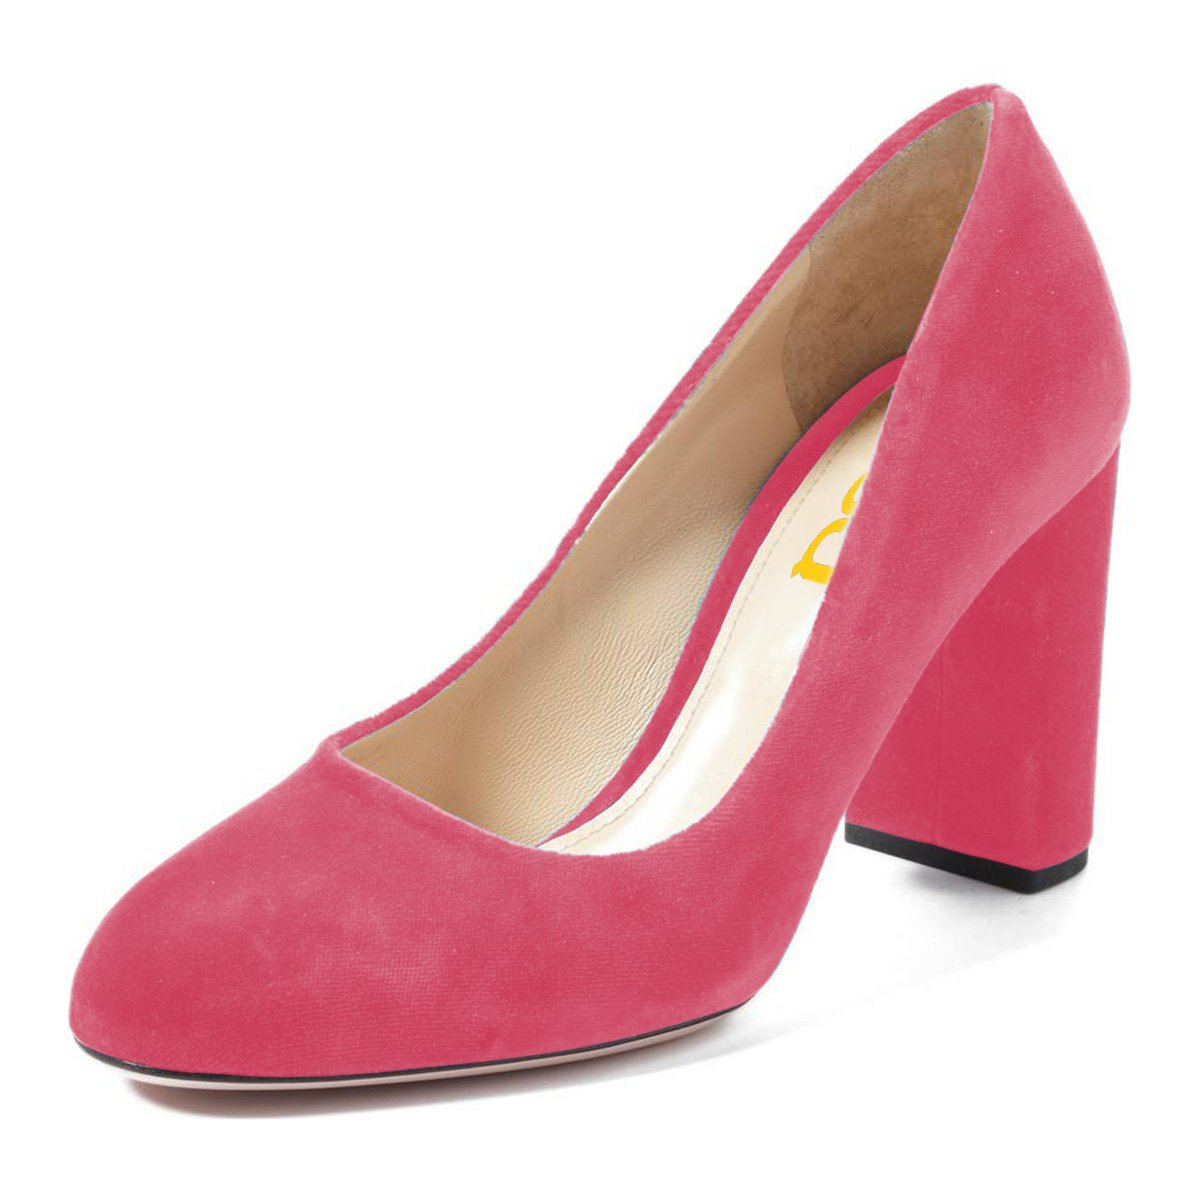 FSJ Women Classic Round Toe Velvet Pumps Chunky High Heels Slip On Office Dress Shoes Size 4-15 US B0784BN6BX 7 M US|Pink